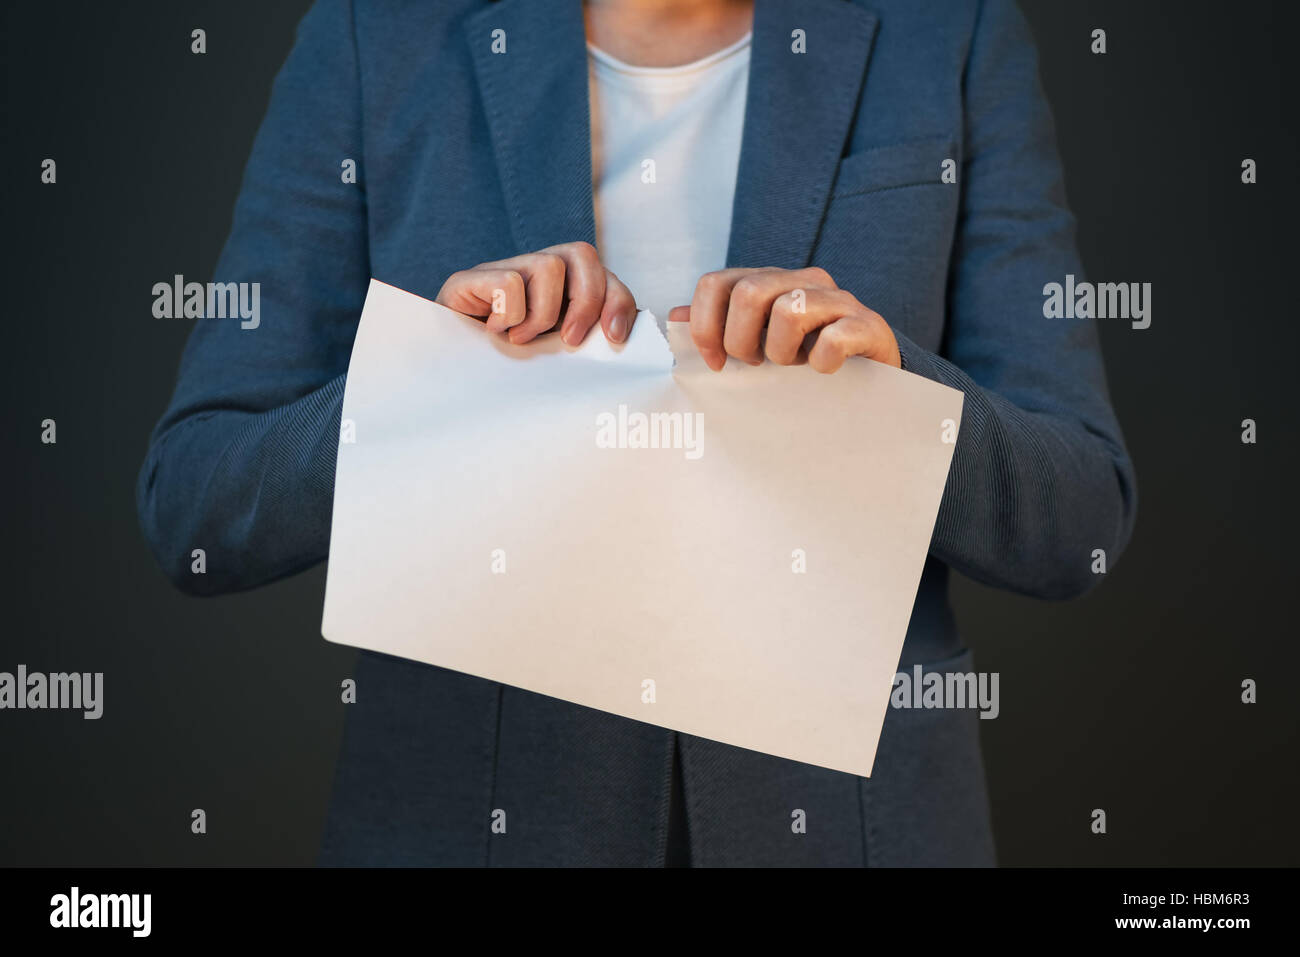 Unsatisfied and angry businesswoman tearing business legal agreement contract paper - Stock Image